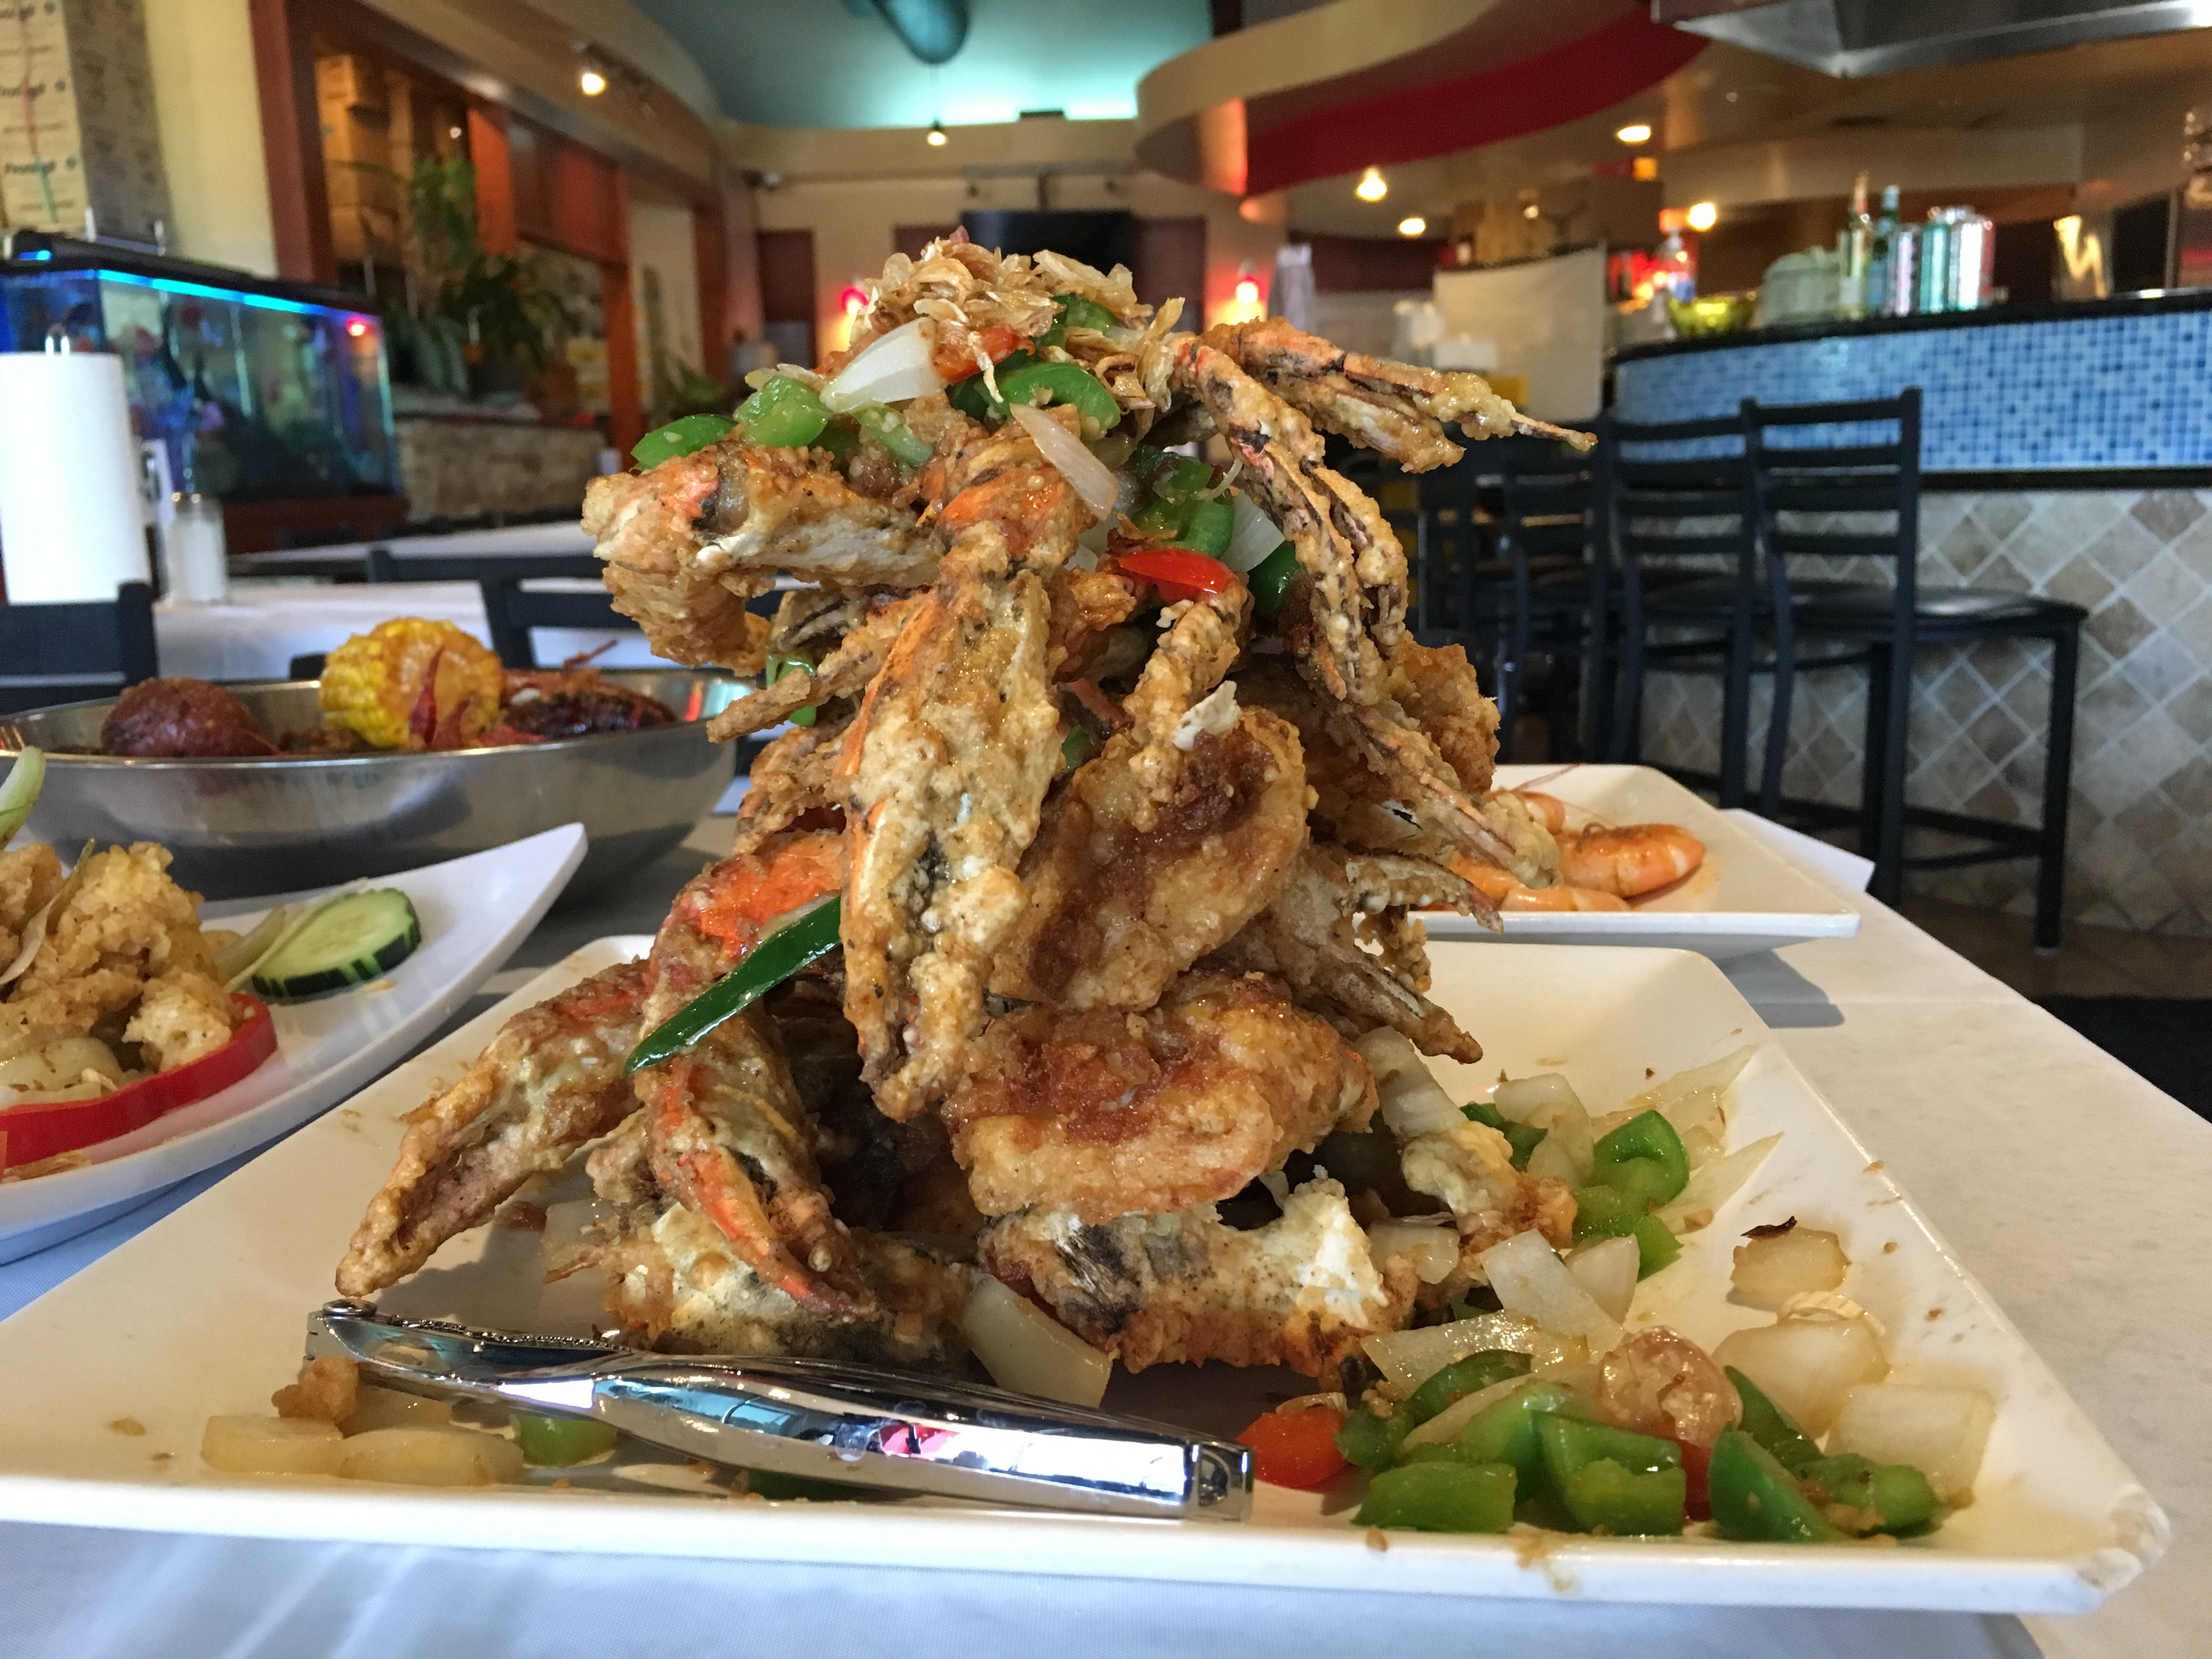 The salt and pepper crab is one of the popular dishes on the menu at the Houston-based restaurant, Crawfish & Noodles, which specializes in Vietnamese-Cajun styled seafood.